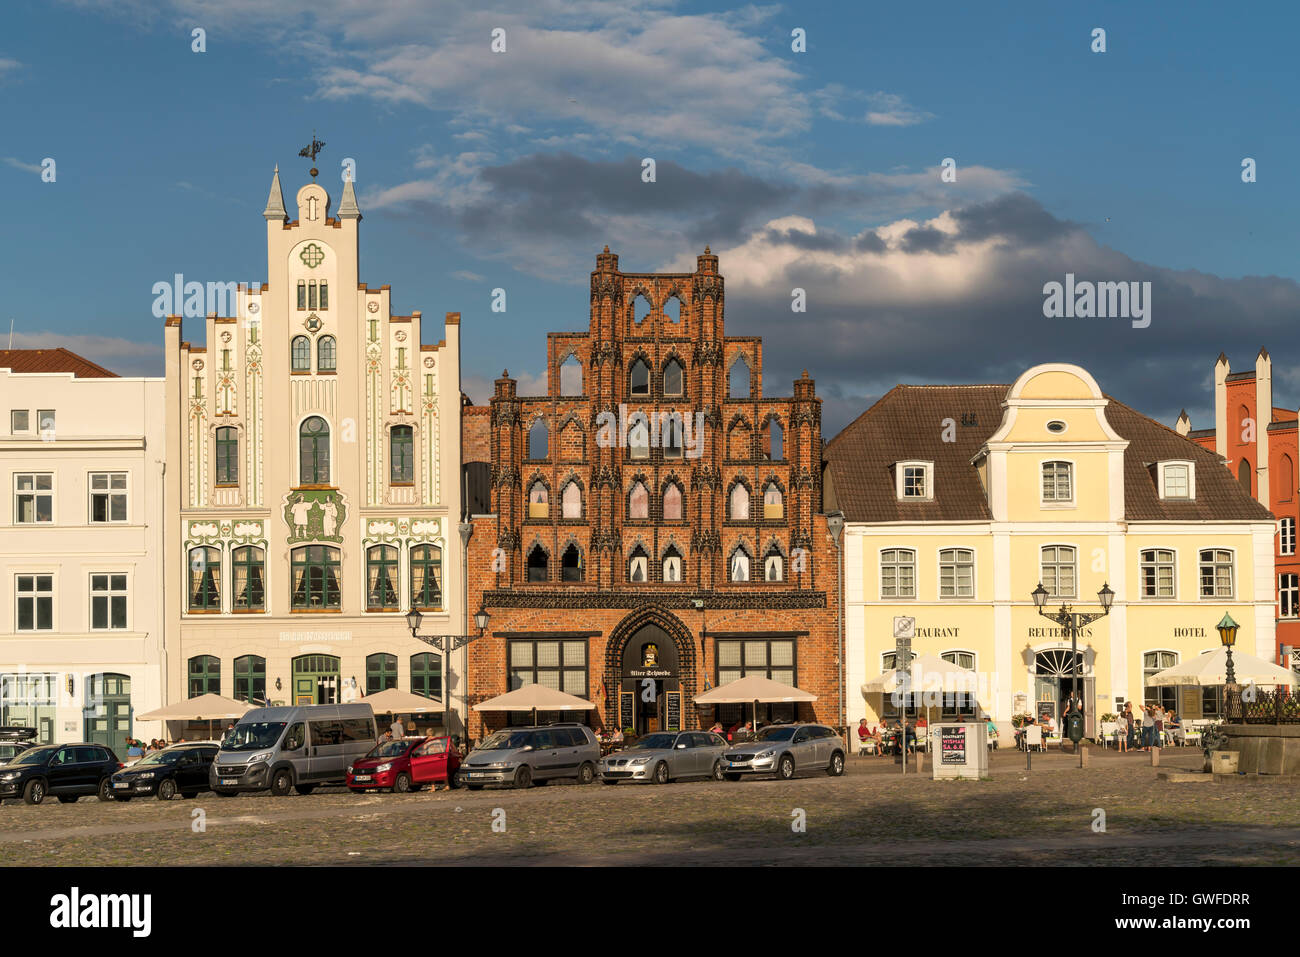 Market Square with patrician's home the Alter Schwede, Hanseatic City of Wismar, Mecklenburg-Vorpommern, Germany - Stock Image